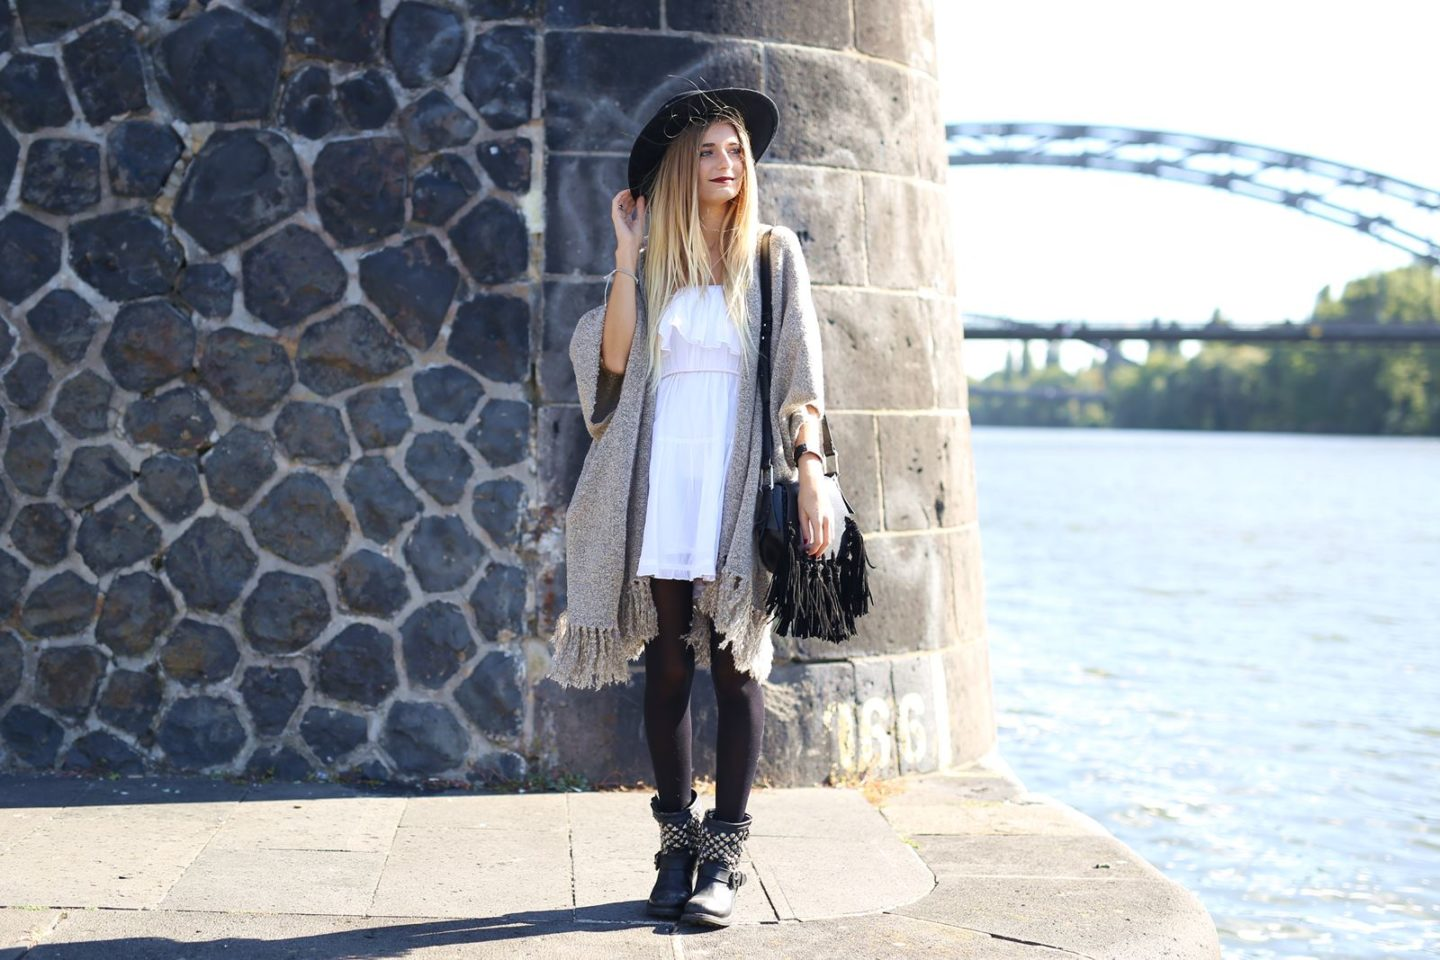 Outfit: Mein erster Herbst Look